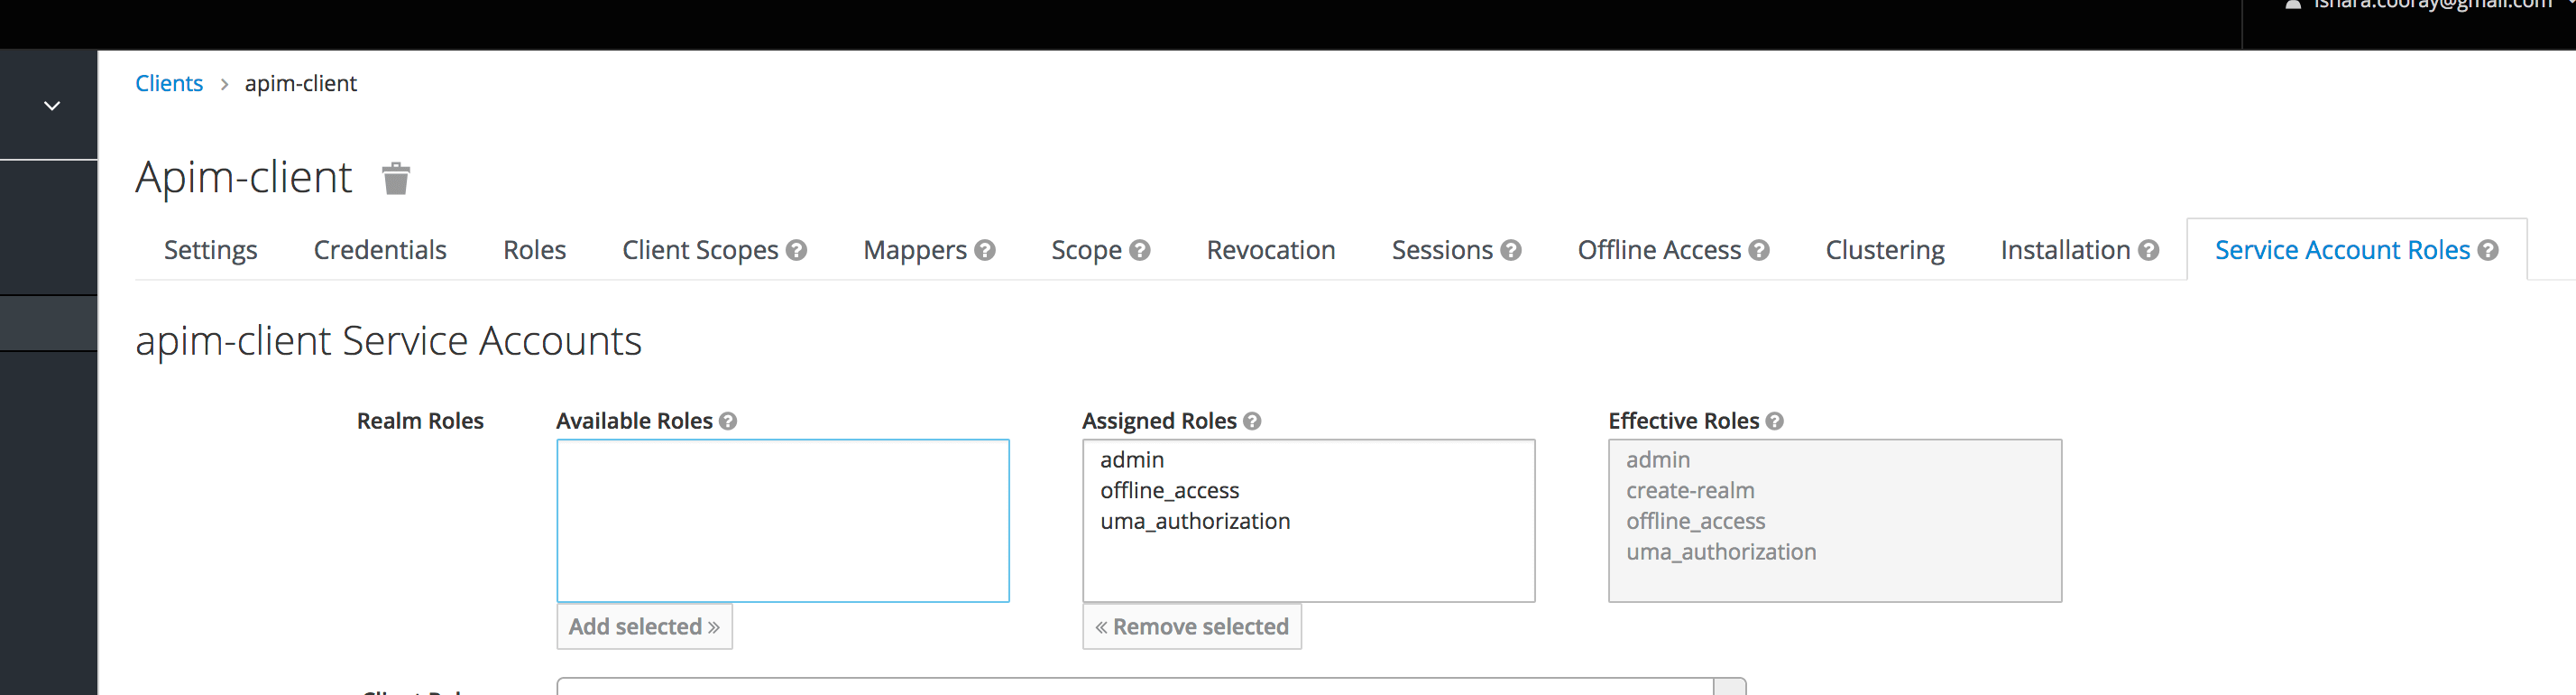 Assign service account roles